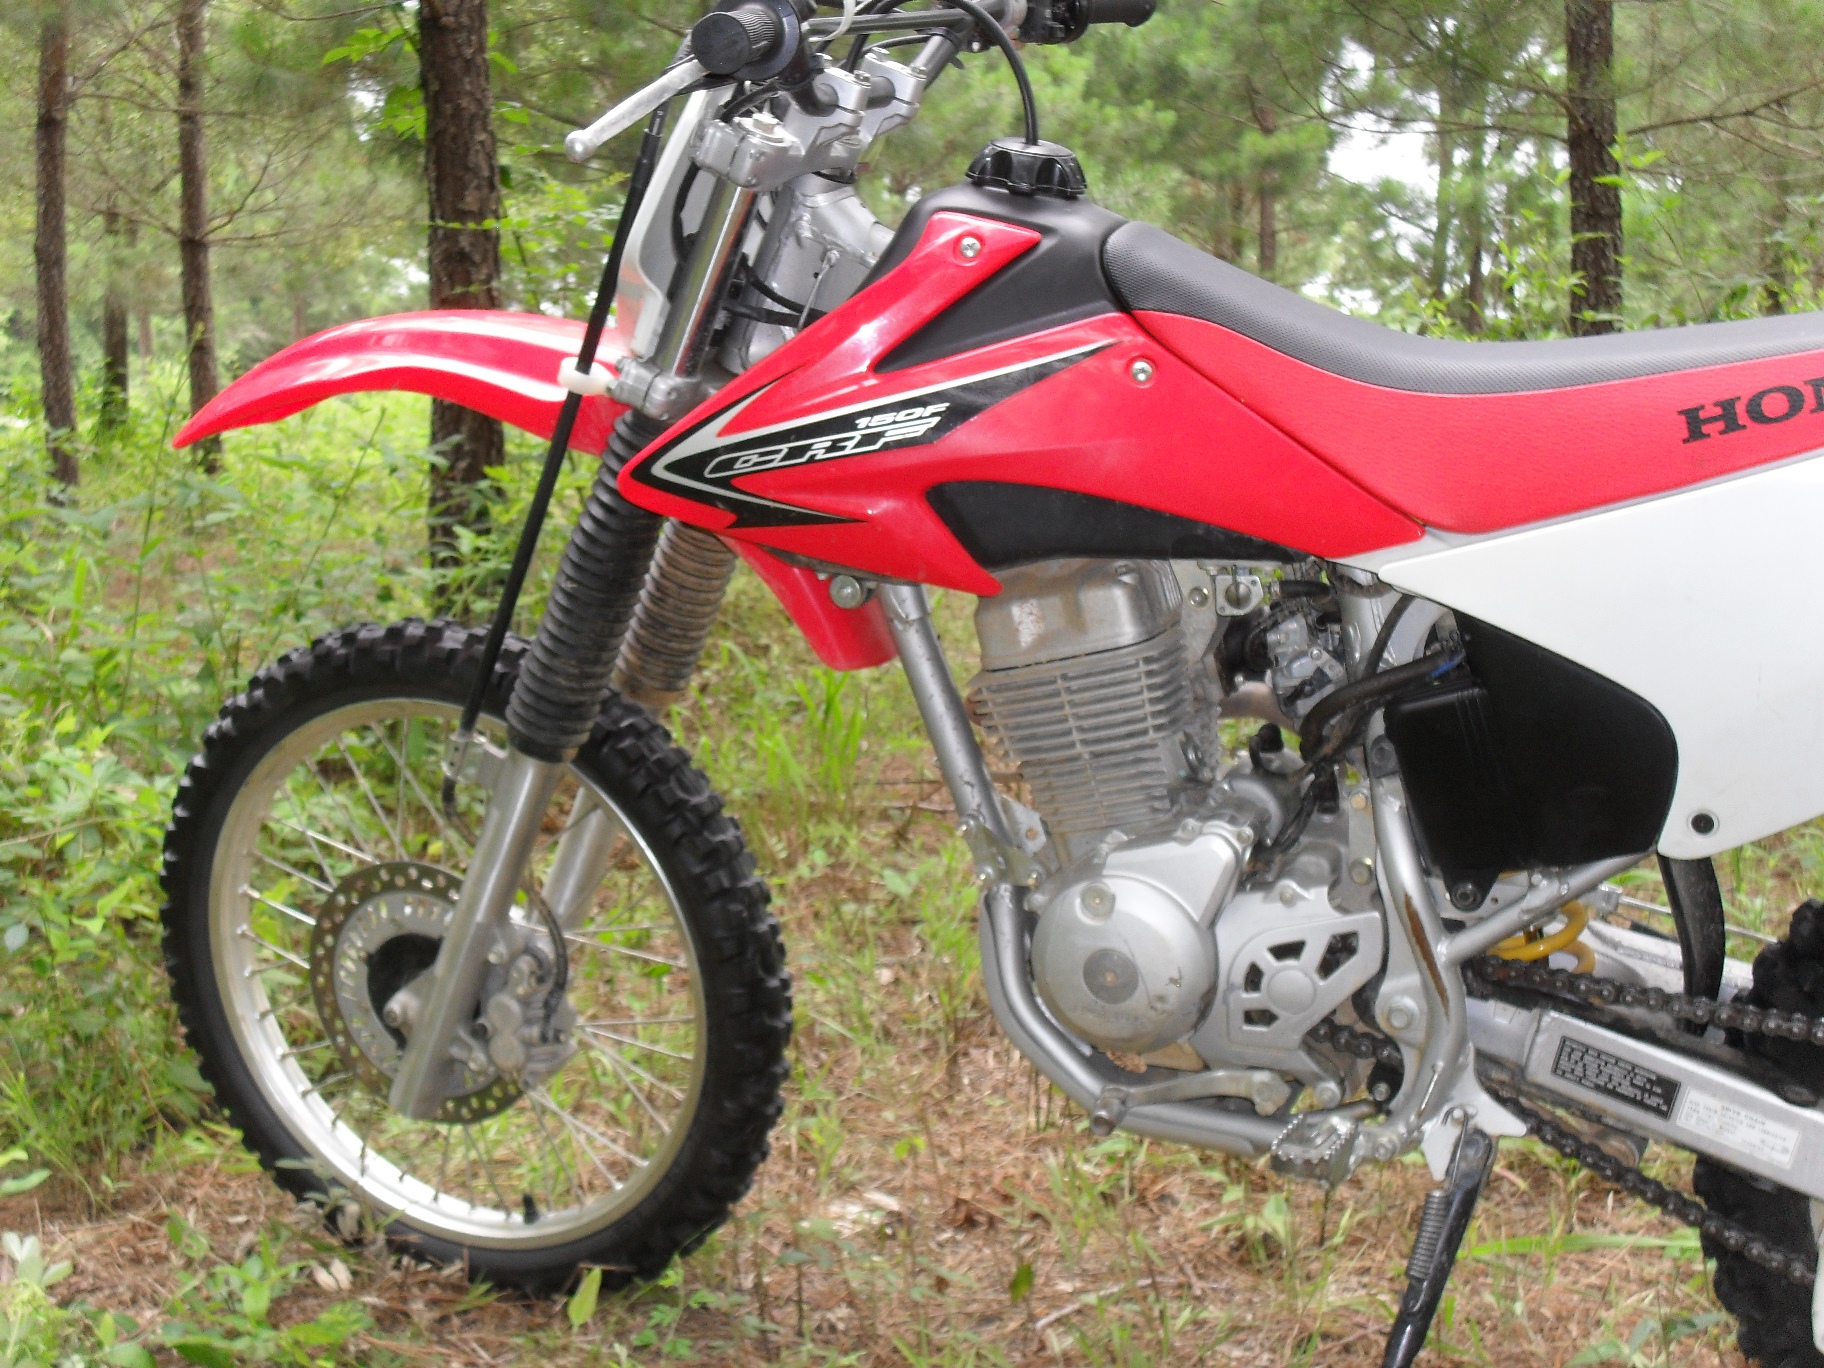 Riding A Crf150 A Psyco Used Bike Test Ride Motopsyco